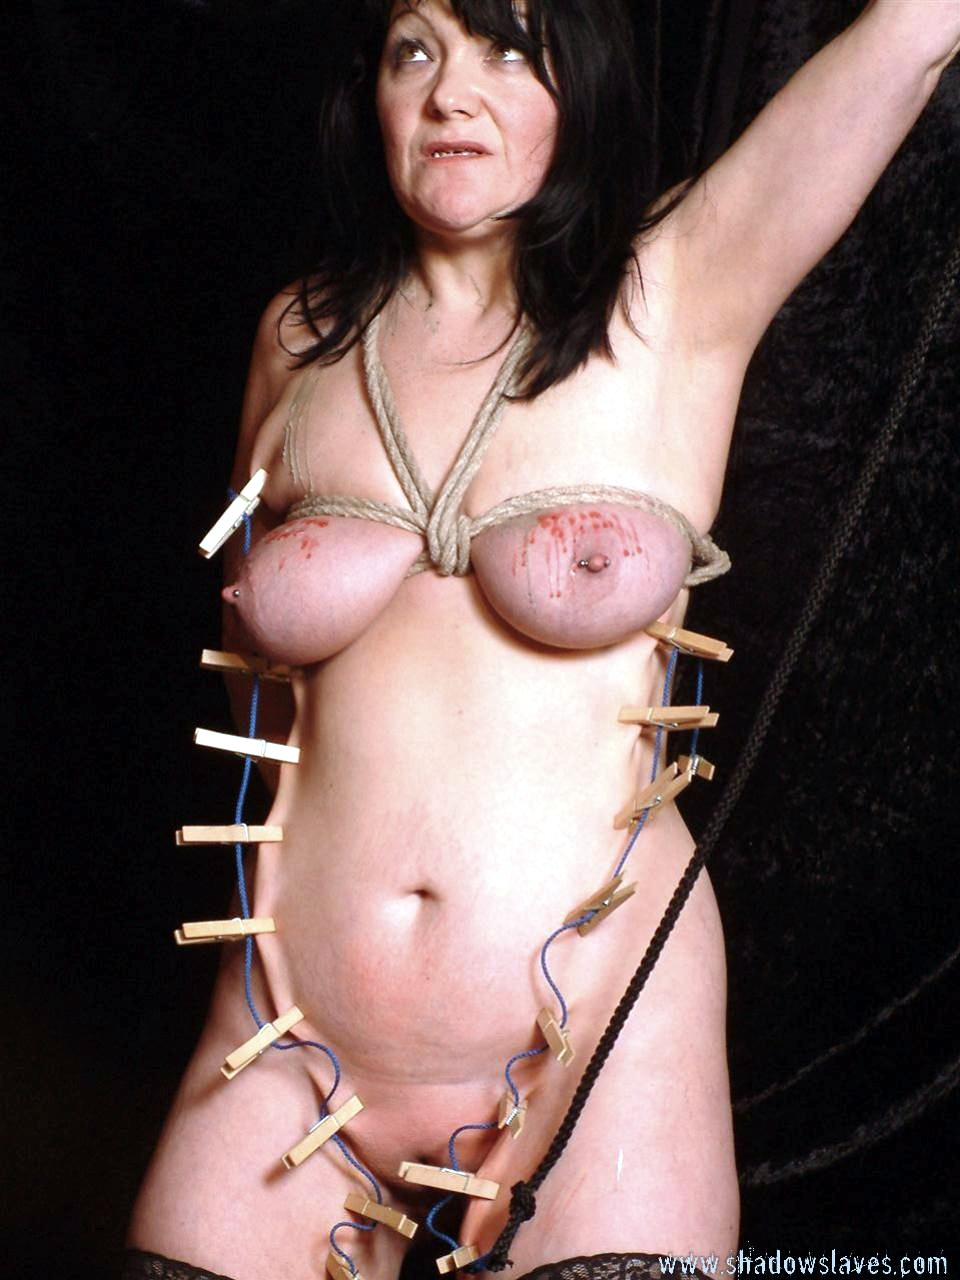 Whipped and pegged by monicamilf from norway 2